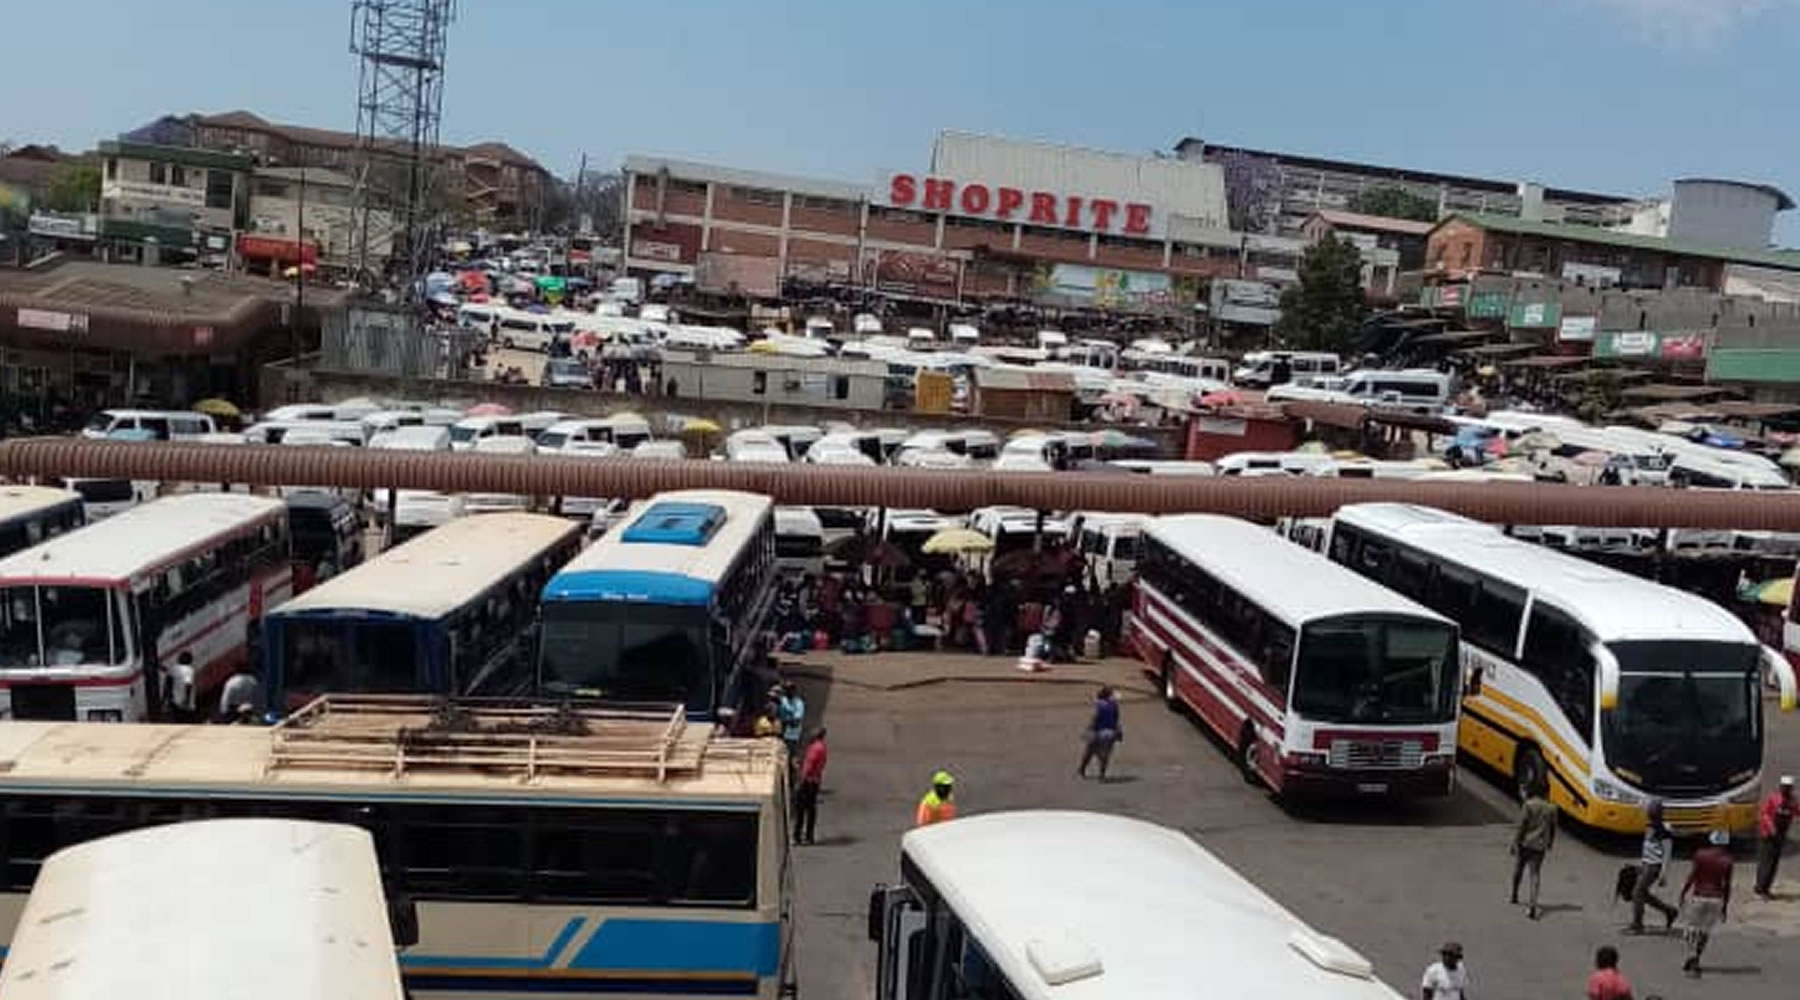 Kombi operators complain of low wages, want to form a union